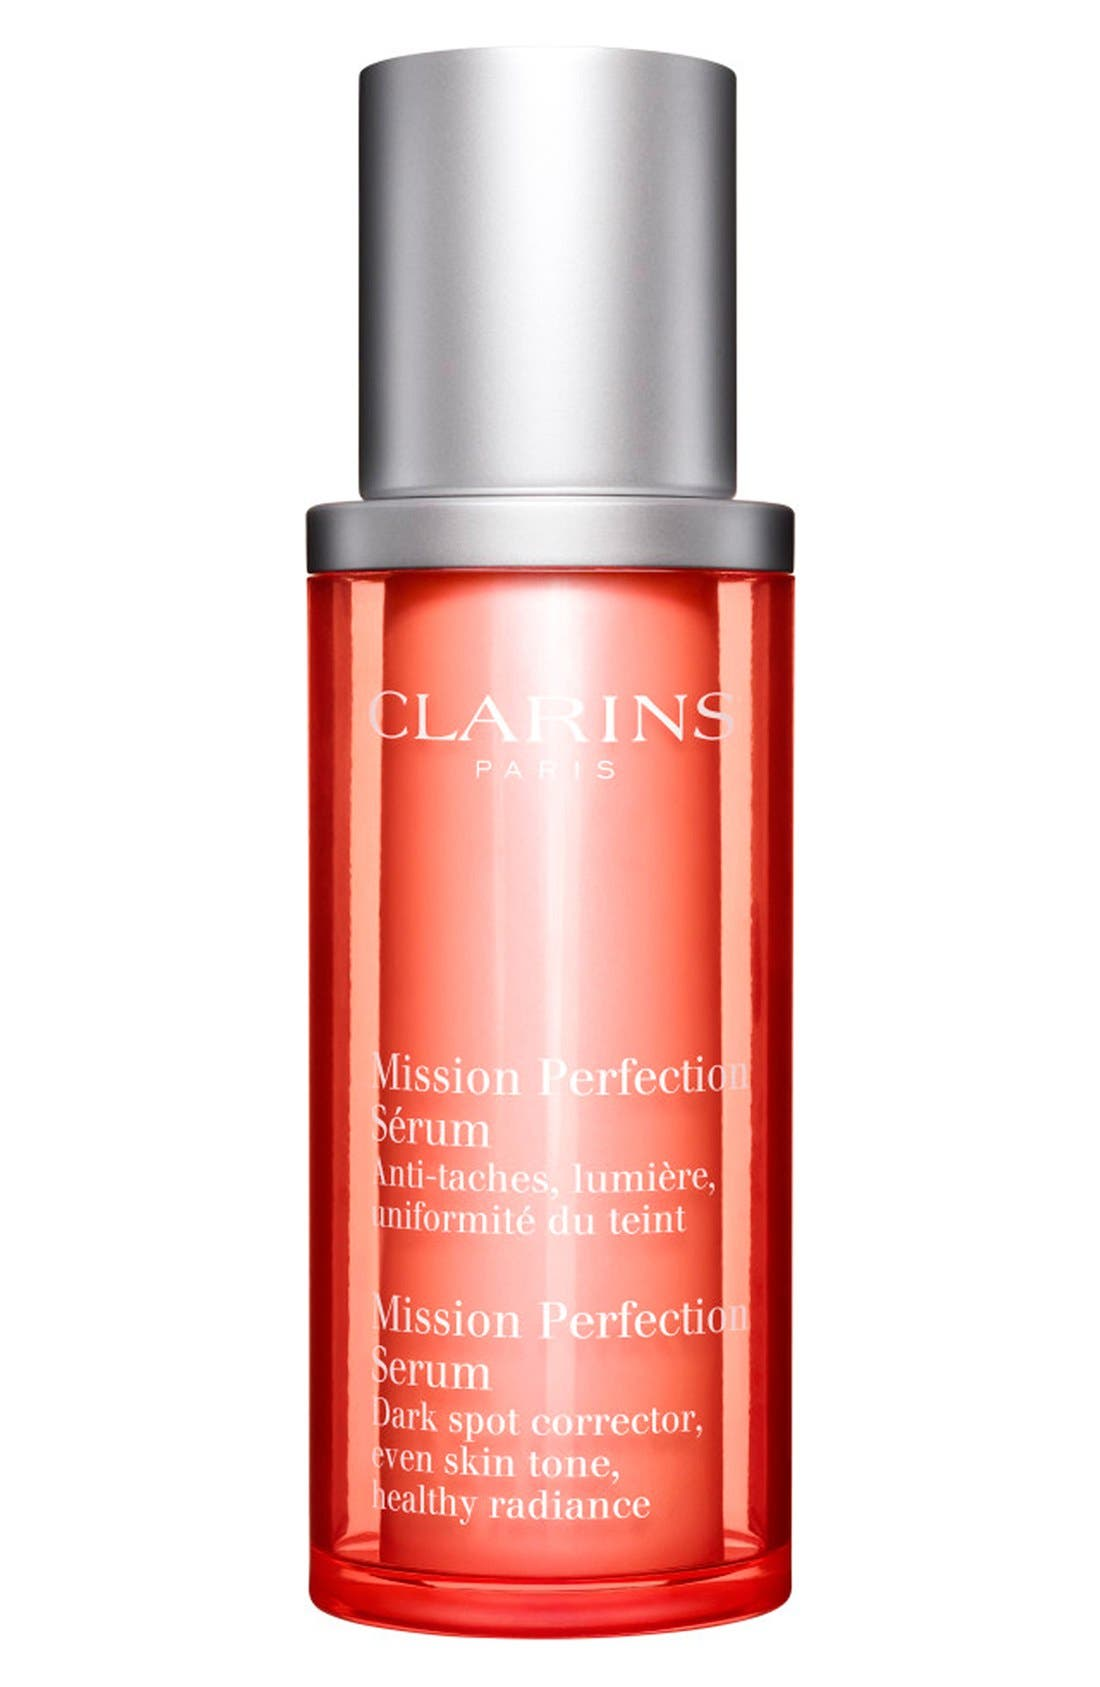 Clarins 'Mission Perfection' Serum